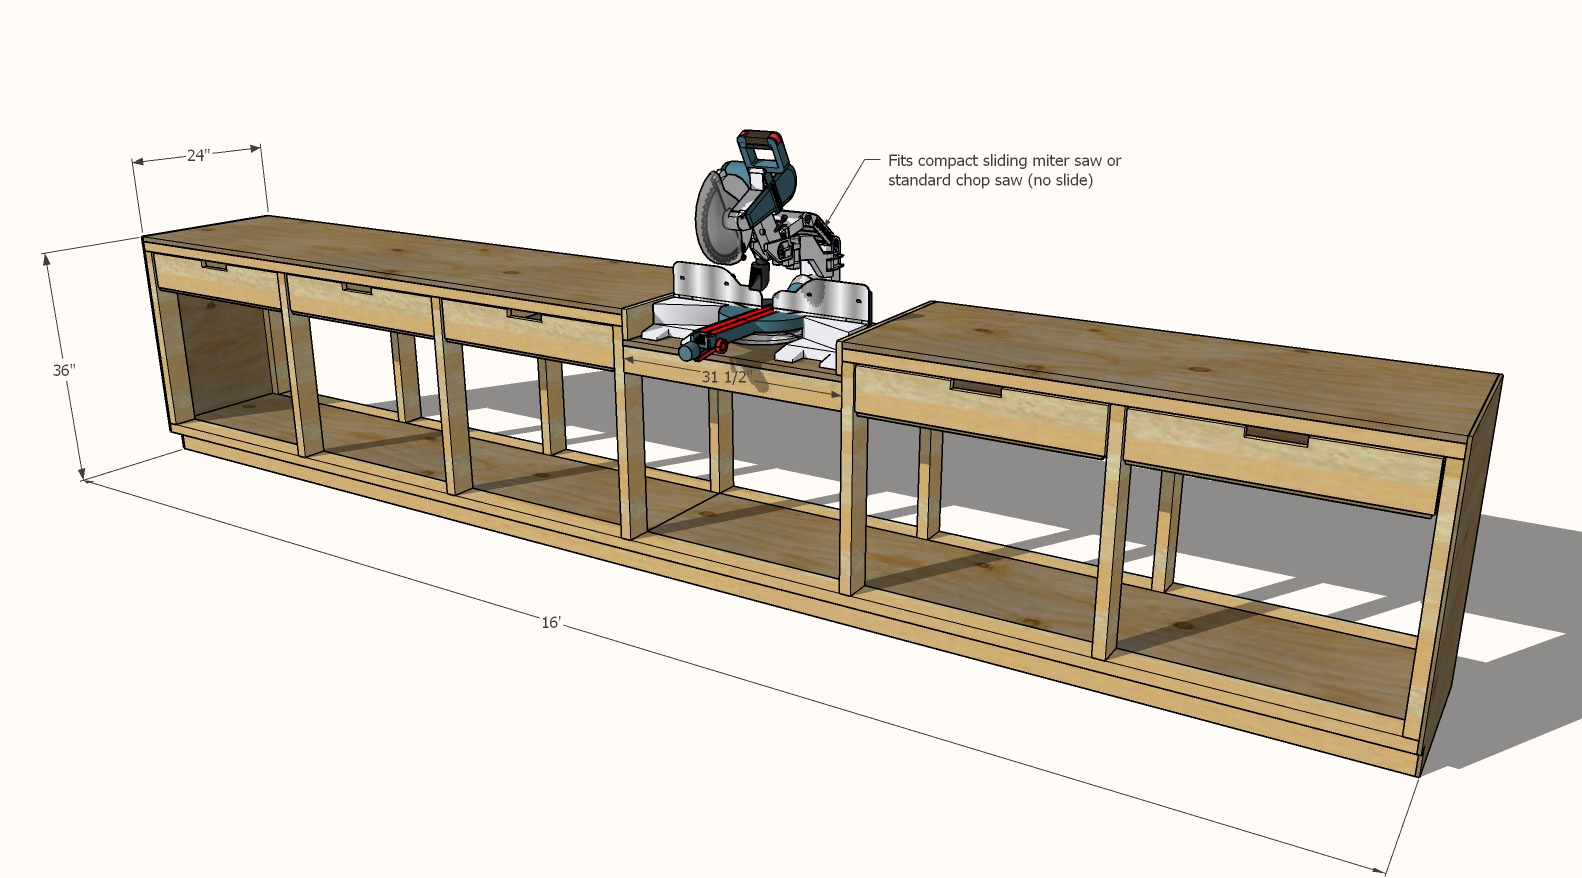 dimensions for drawer workbench with miter saw